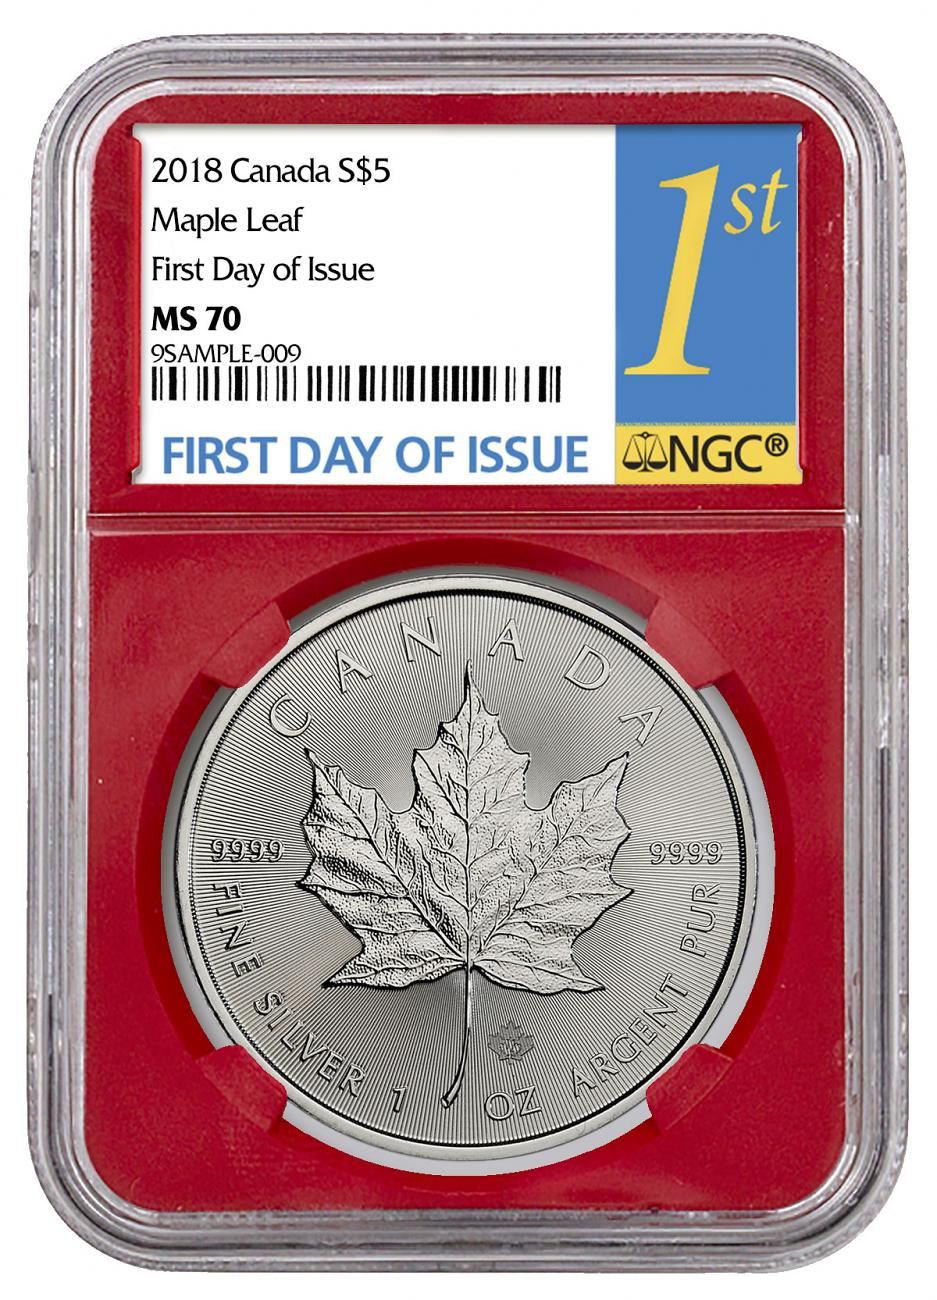 2018 Canada 1 oz Silver Maple Leaf $5 Coin NGC MS70 FDI Red Core Holder